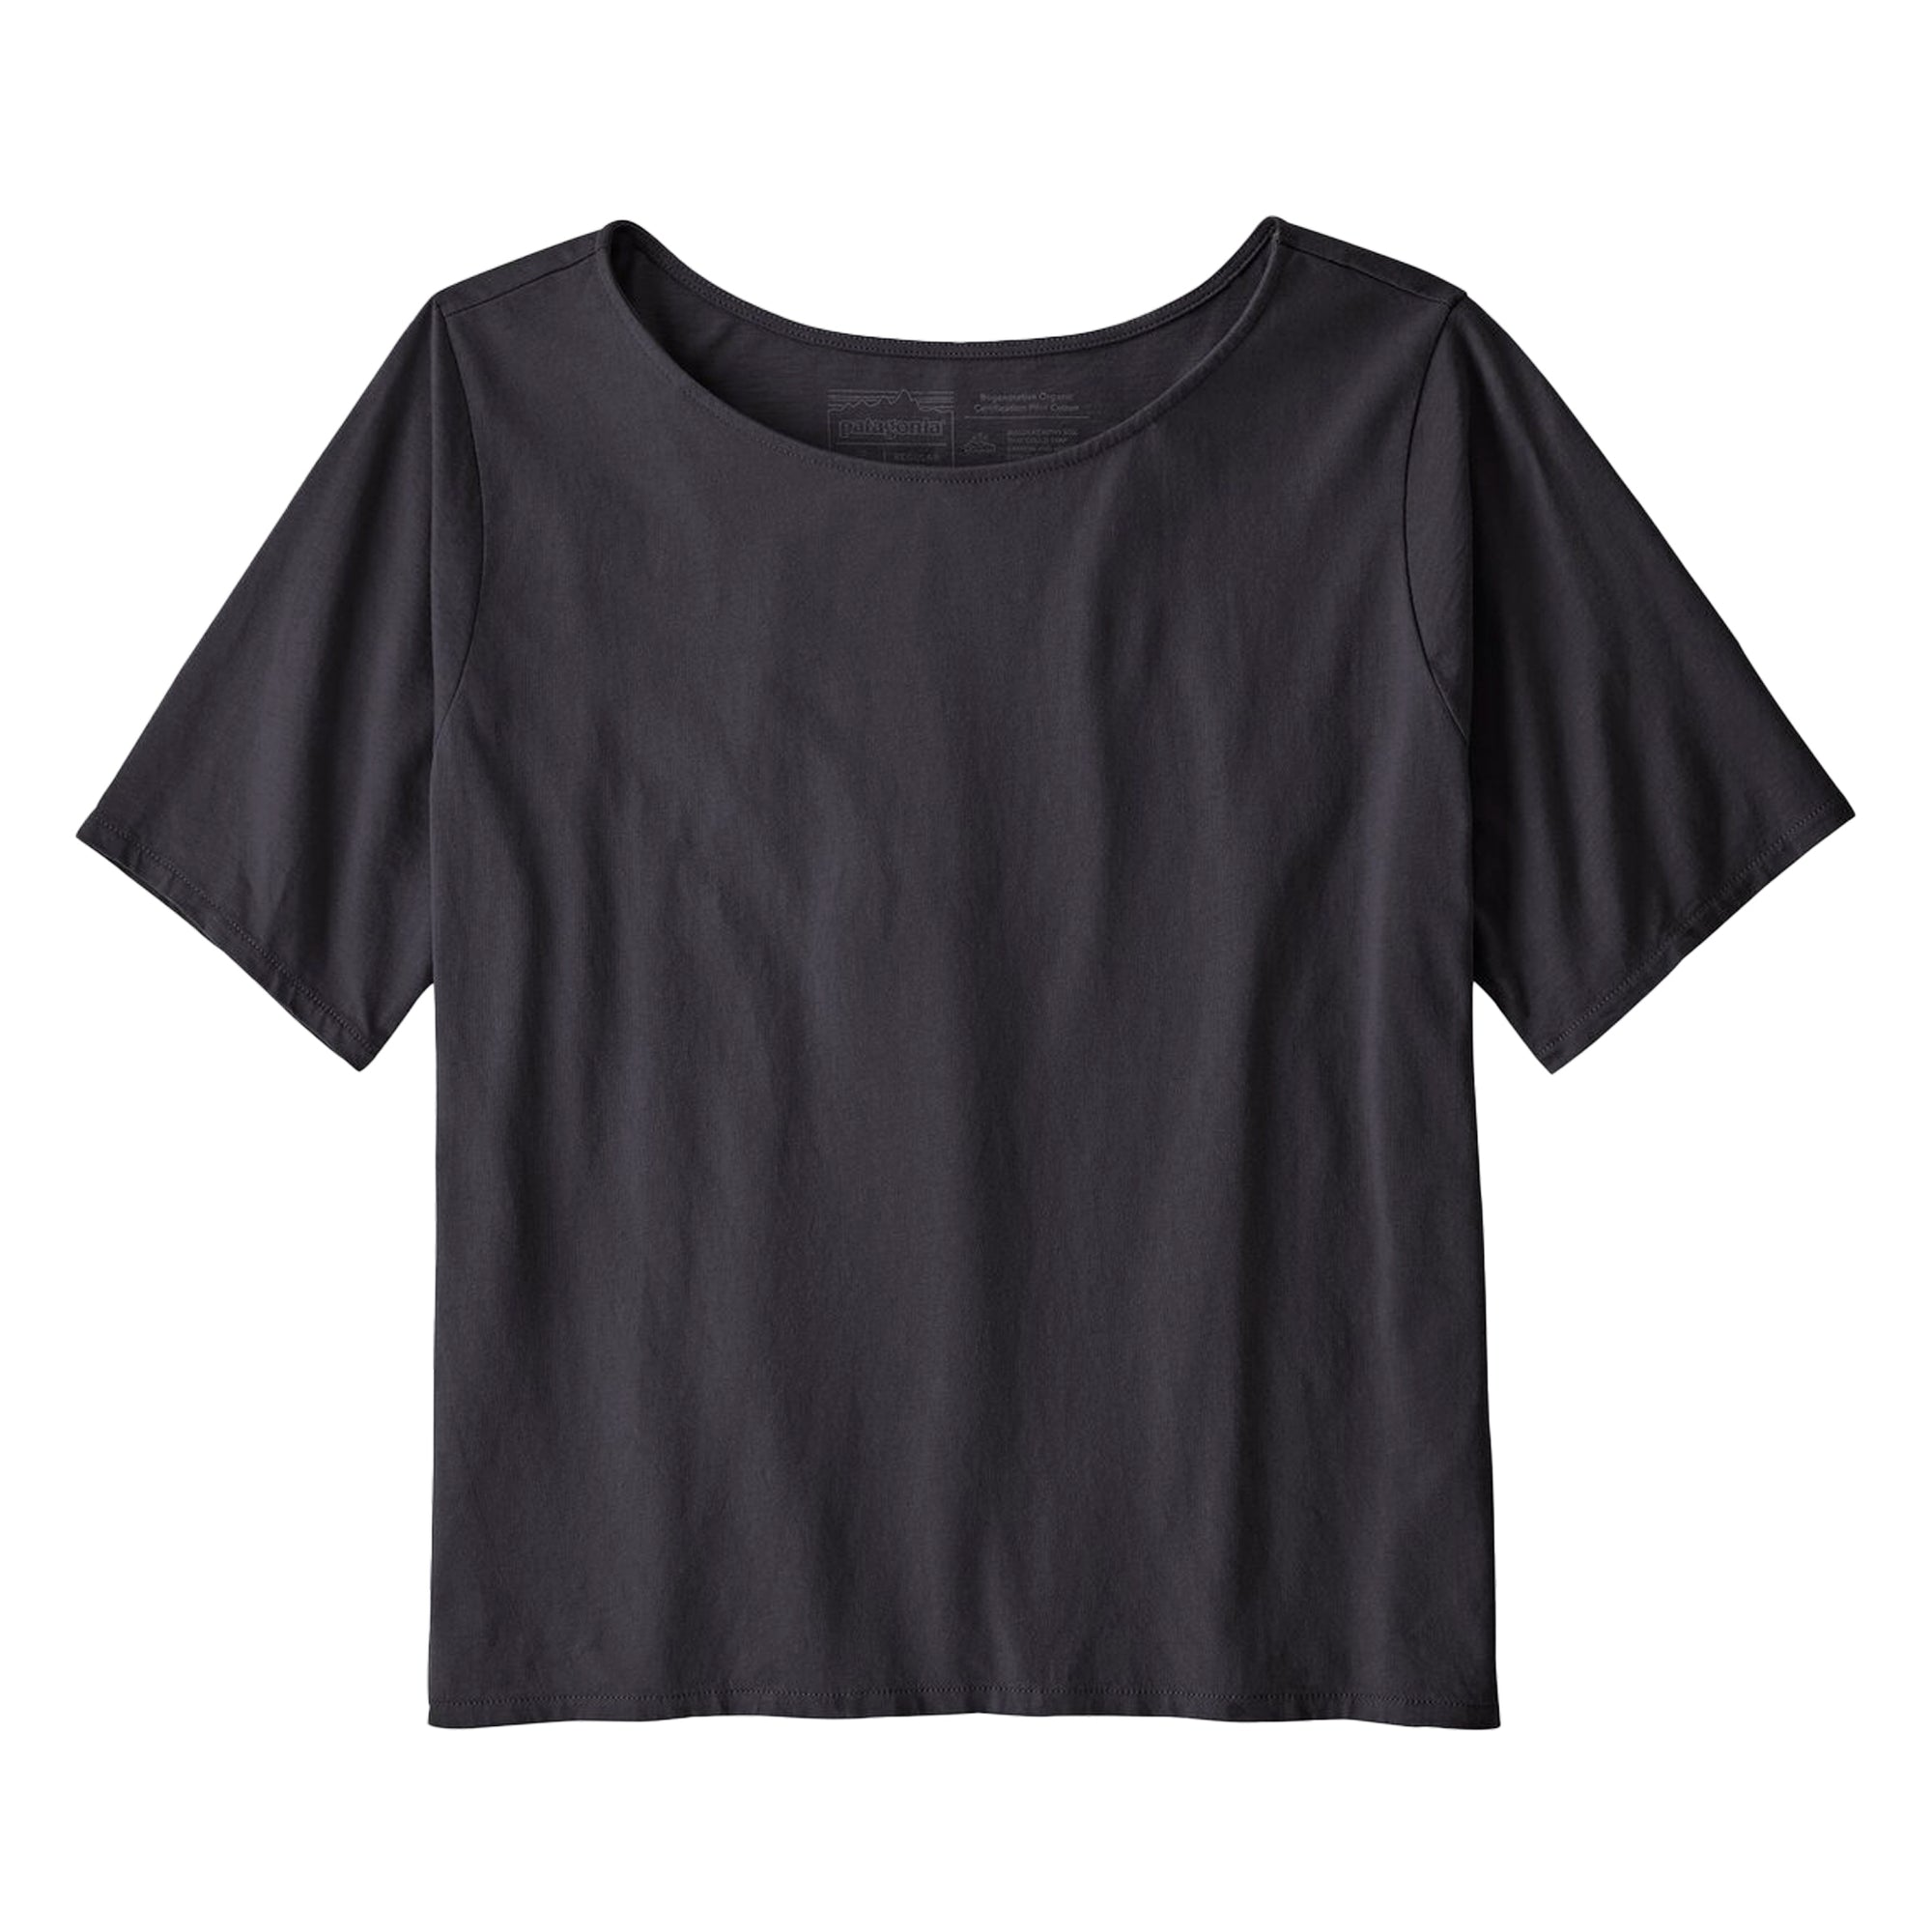 Patagonia Womens Cotton in Conversion Tee: Black - The Union Project